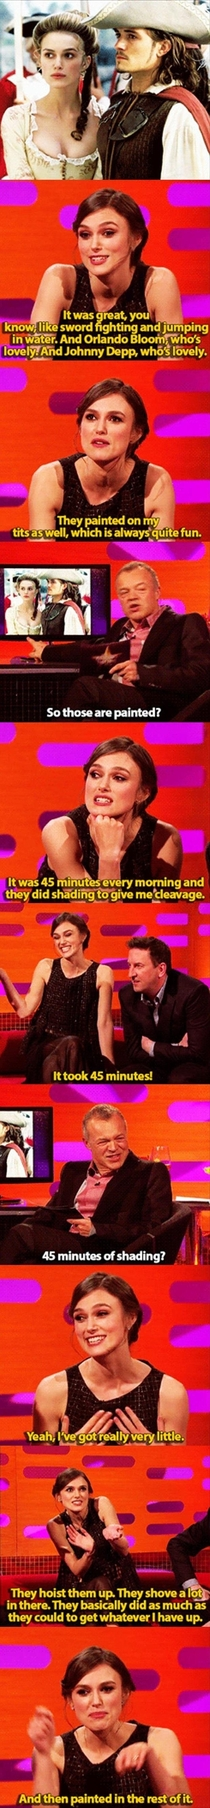 Poor Keira Knightley